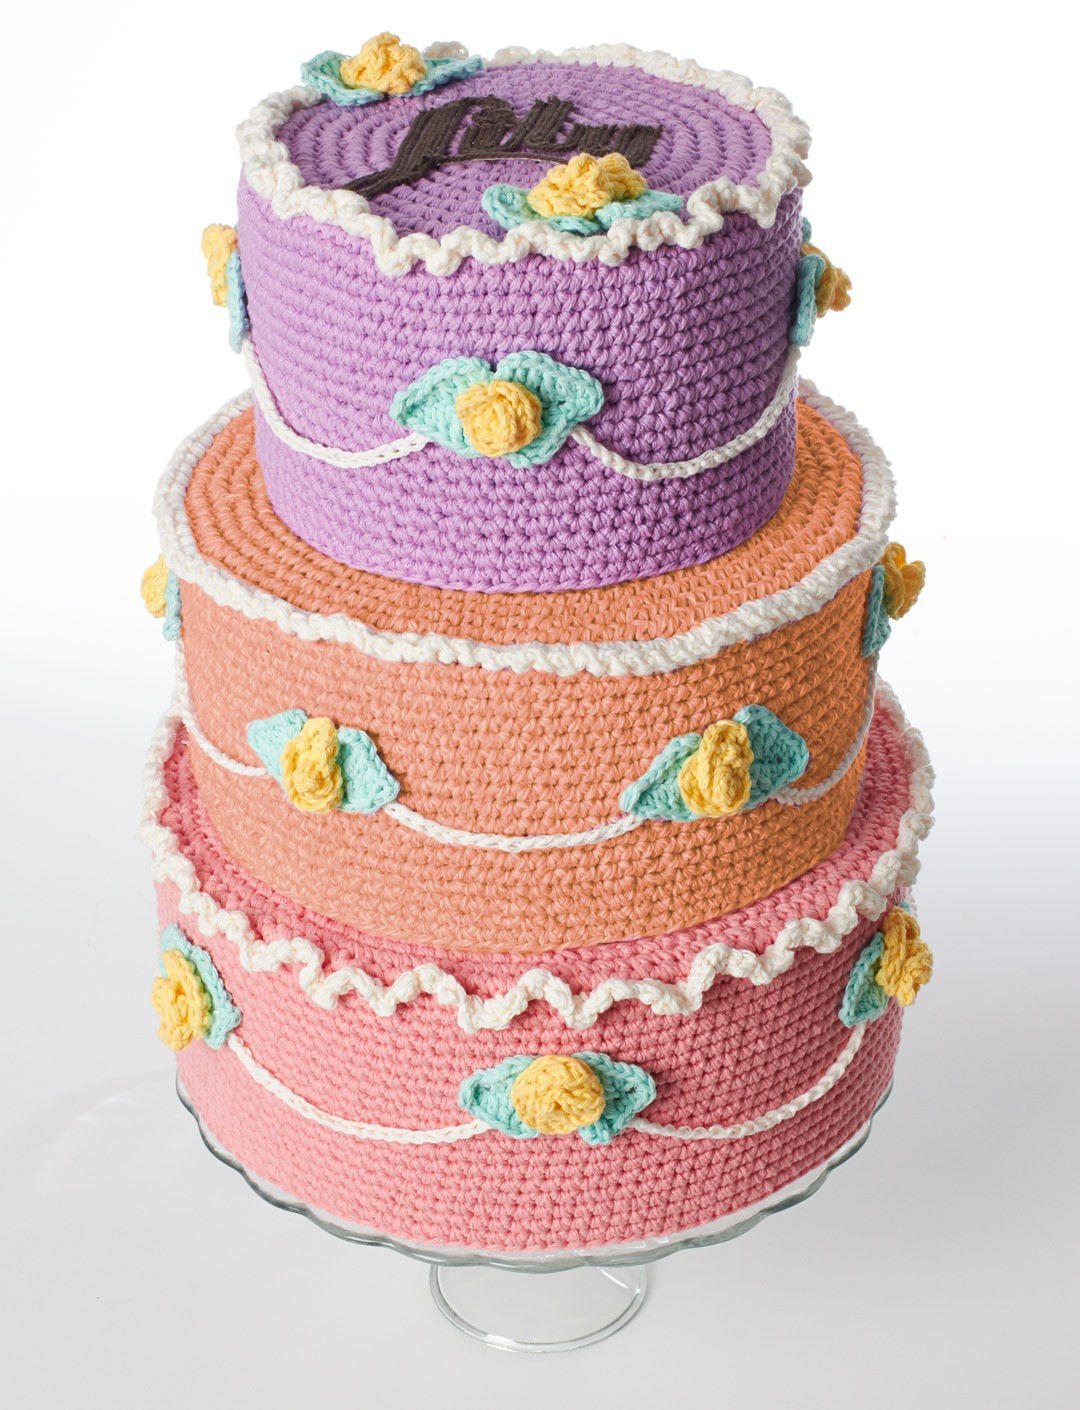 New Lily Let them Eat Cake Crochet Pattern Crochet Cake Of Incredible 40 Ideas Crochet Cake